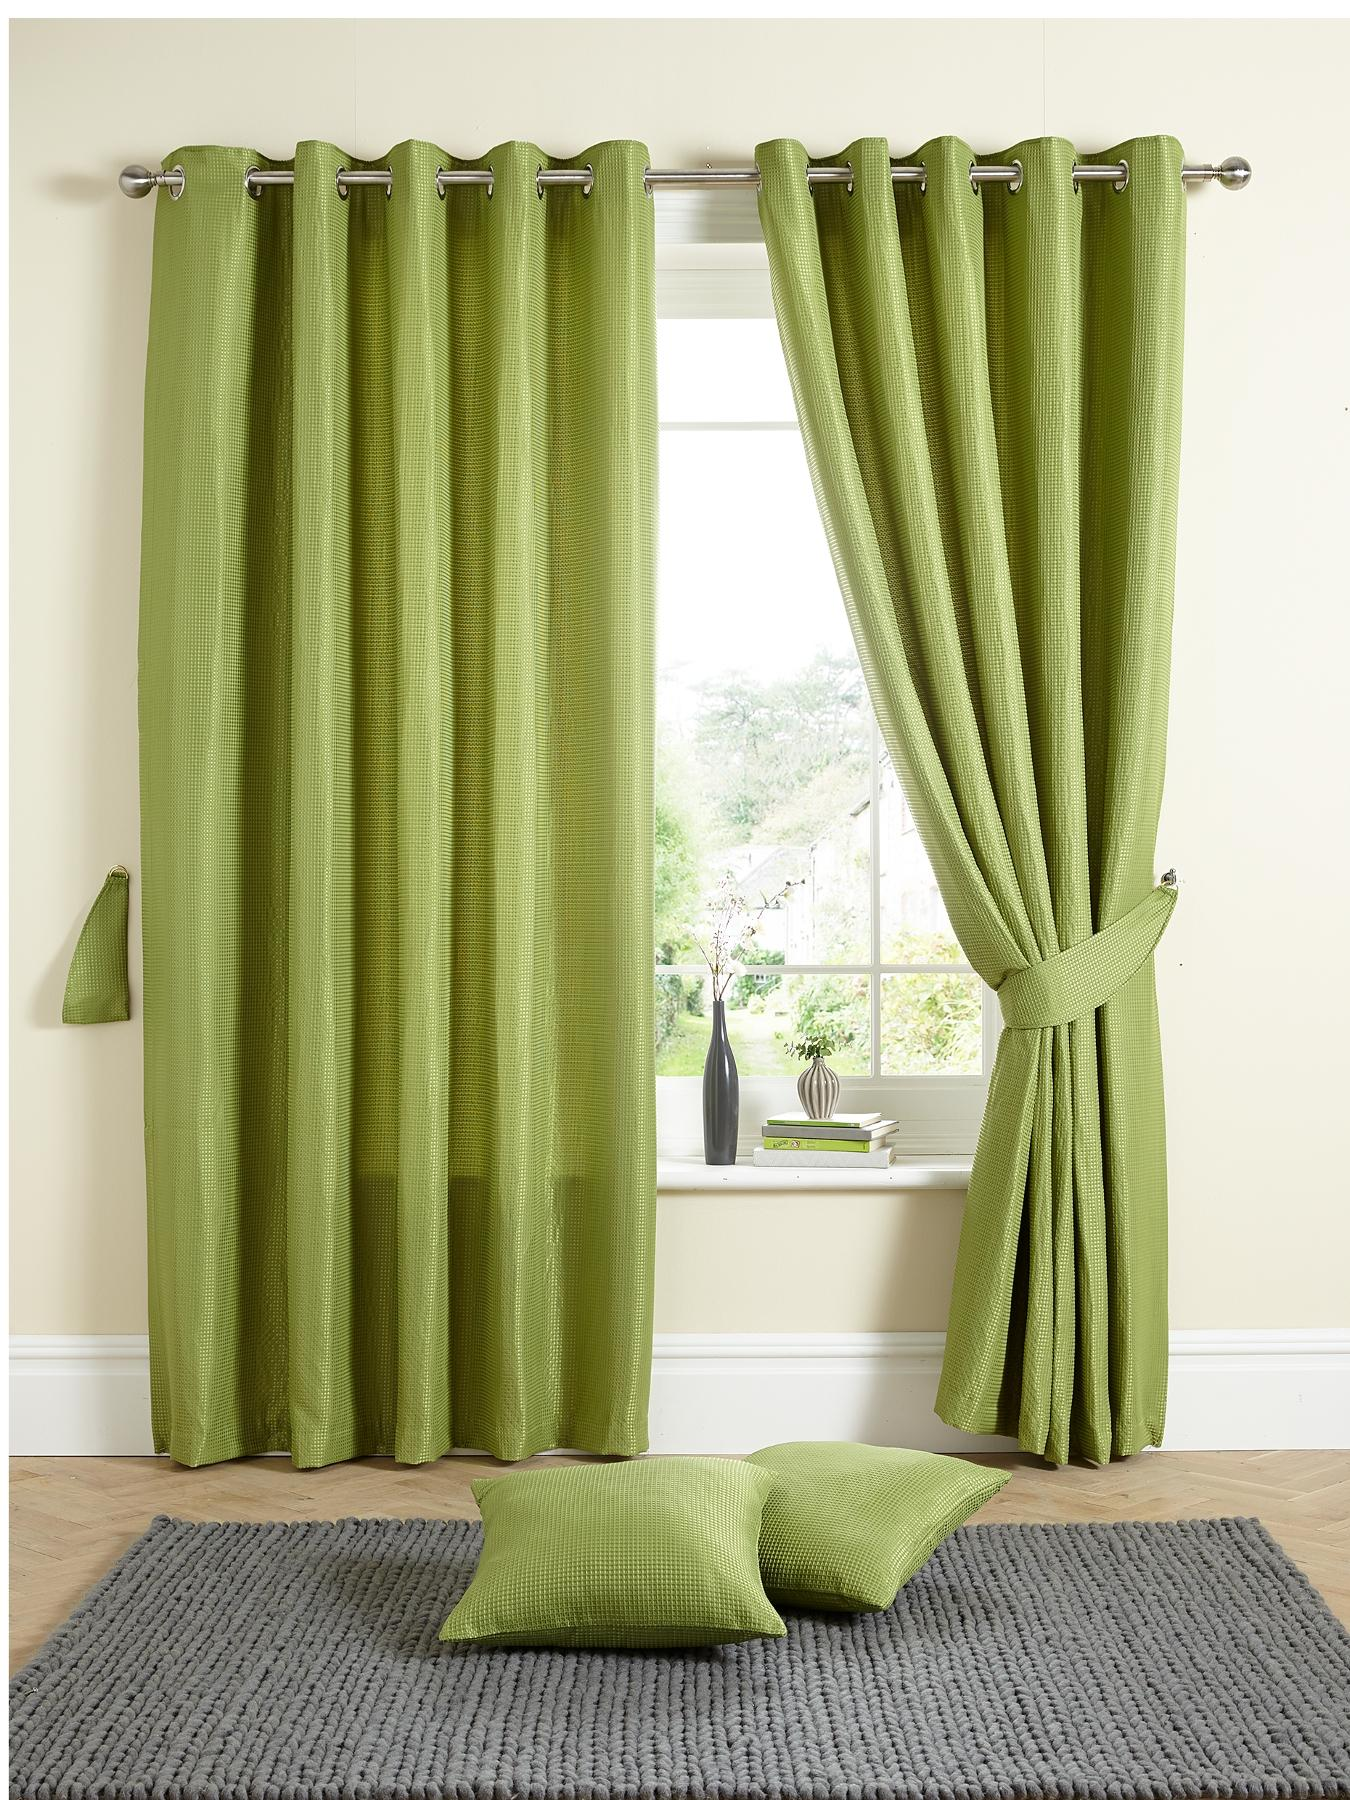 Millie Waffle Eyelet Curtains, Green,Chocolate,Plum,Cream,Red,Blue.